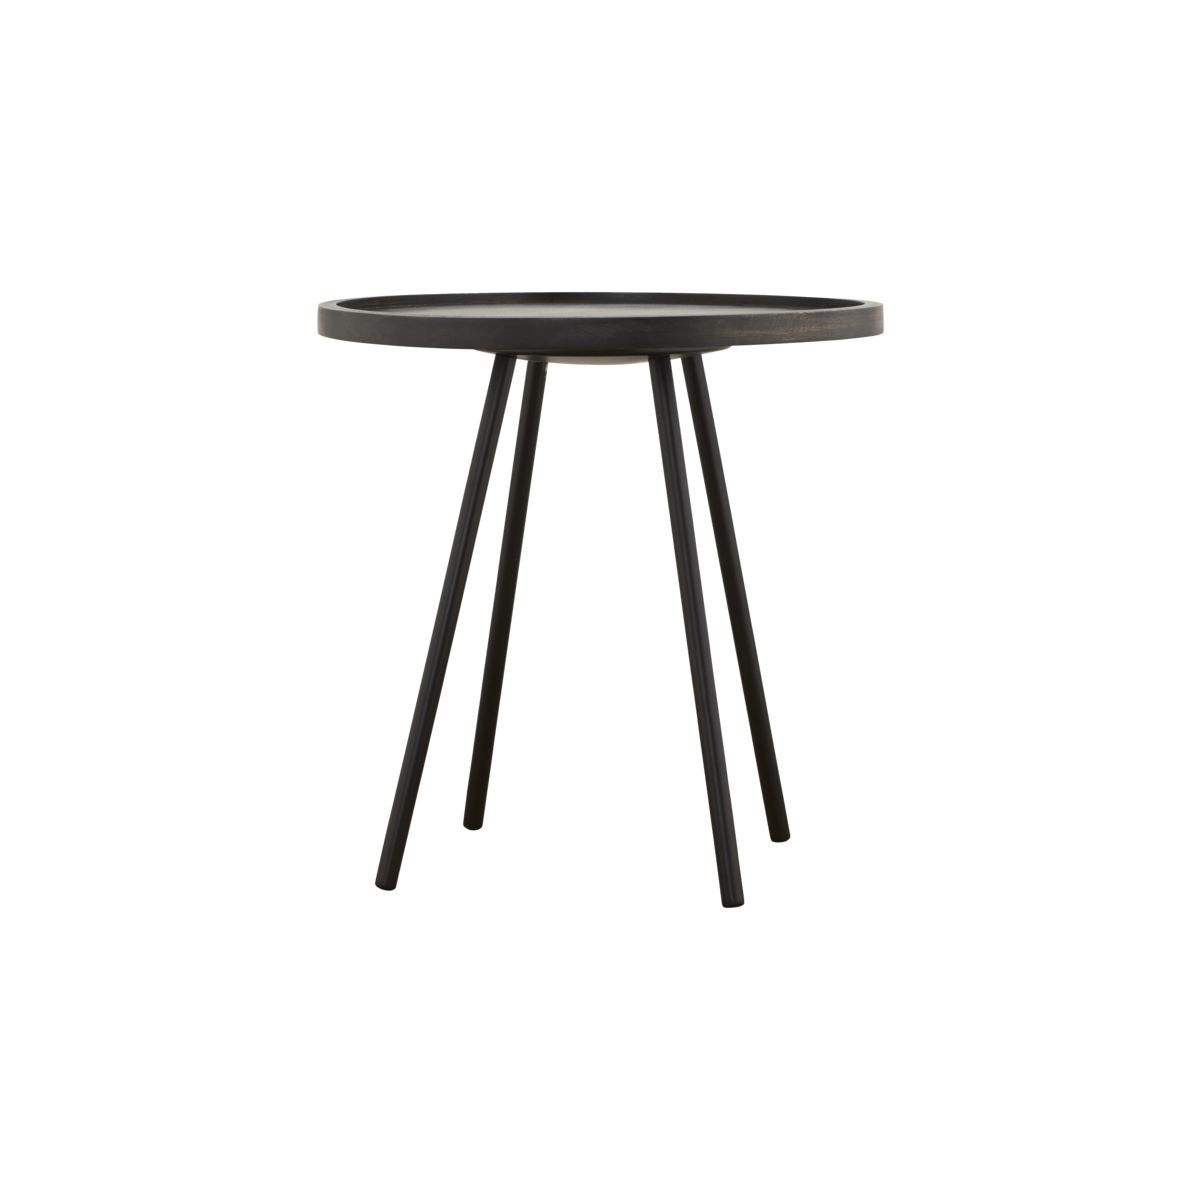 Coffetable JUCO Ø 50 cm h: 50 cm, House Doctor